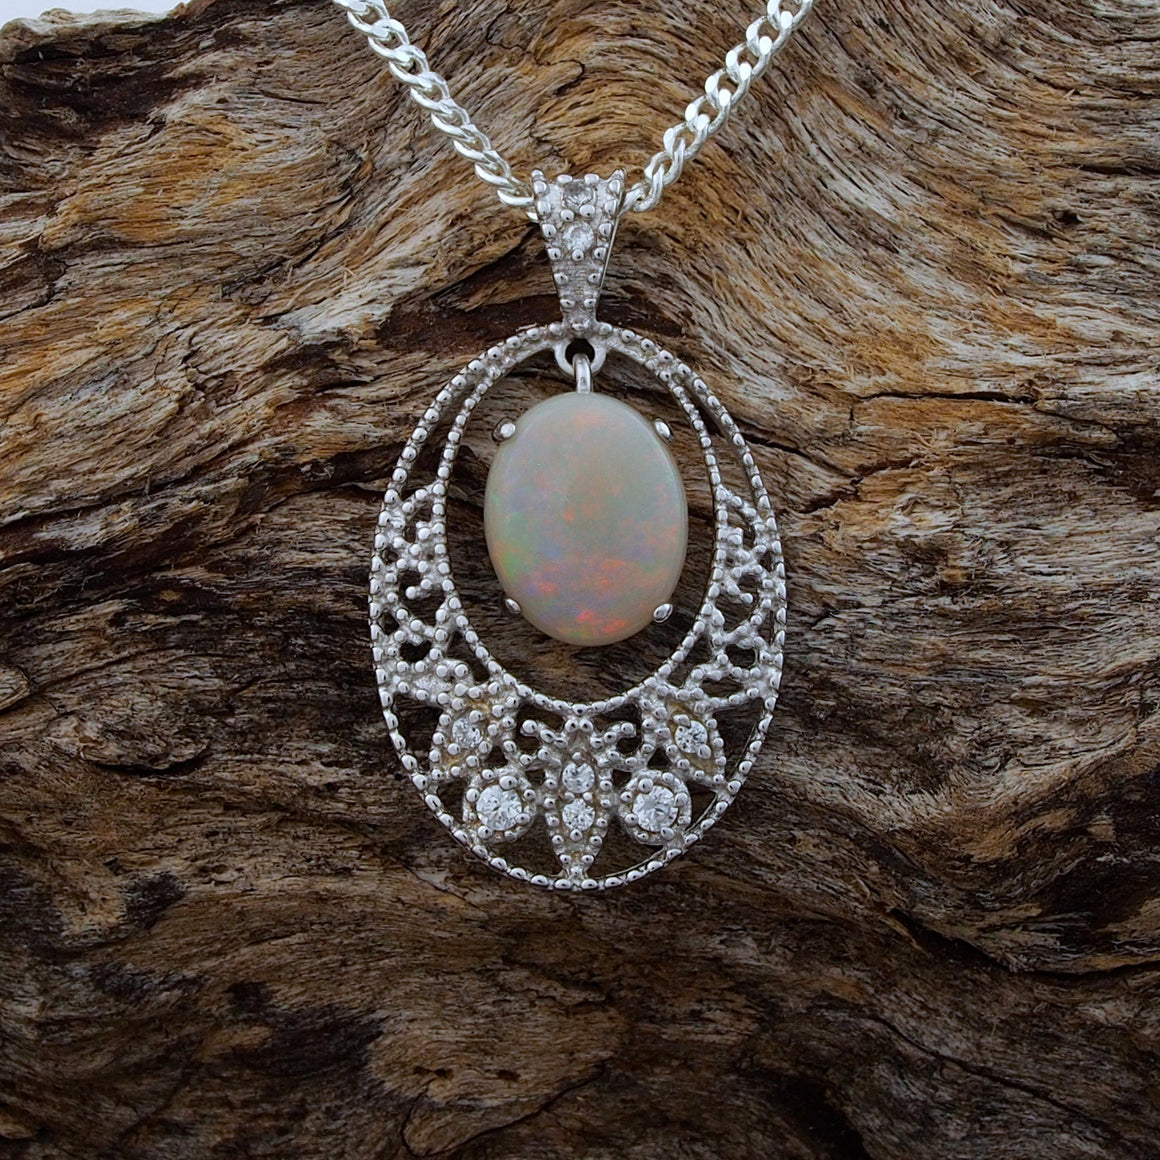 Sterling silver lace design necklace pendant claw set with a colourful oval white opal and eight cubic zirconias.